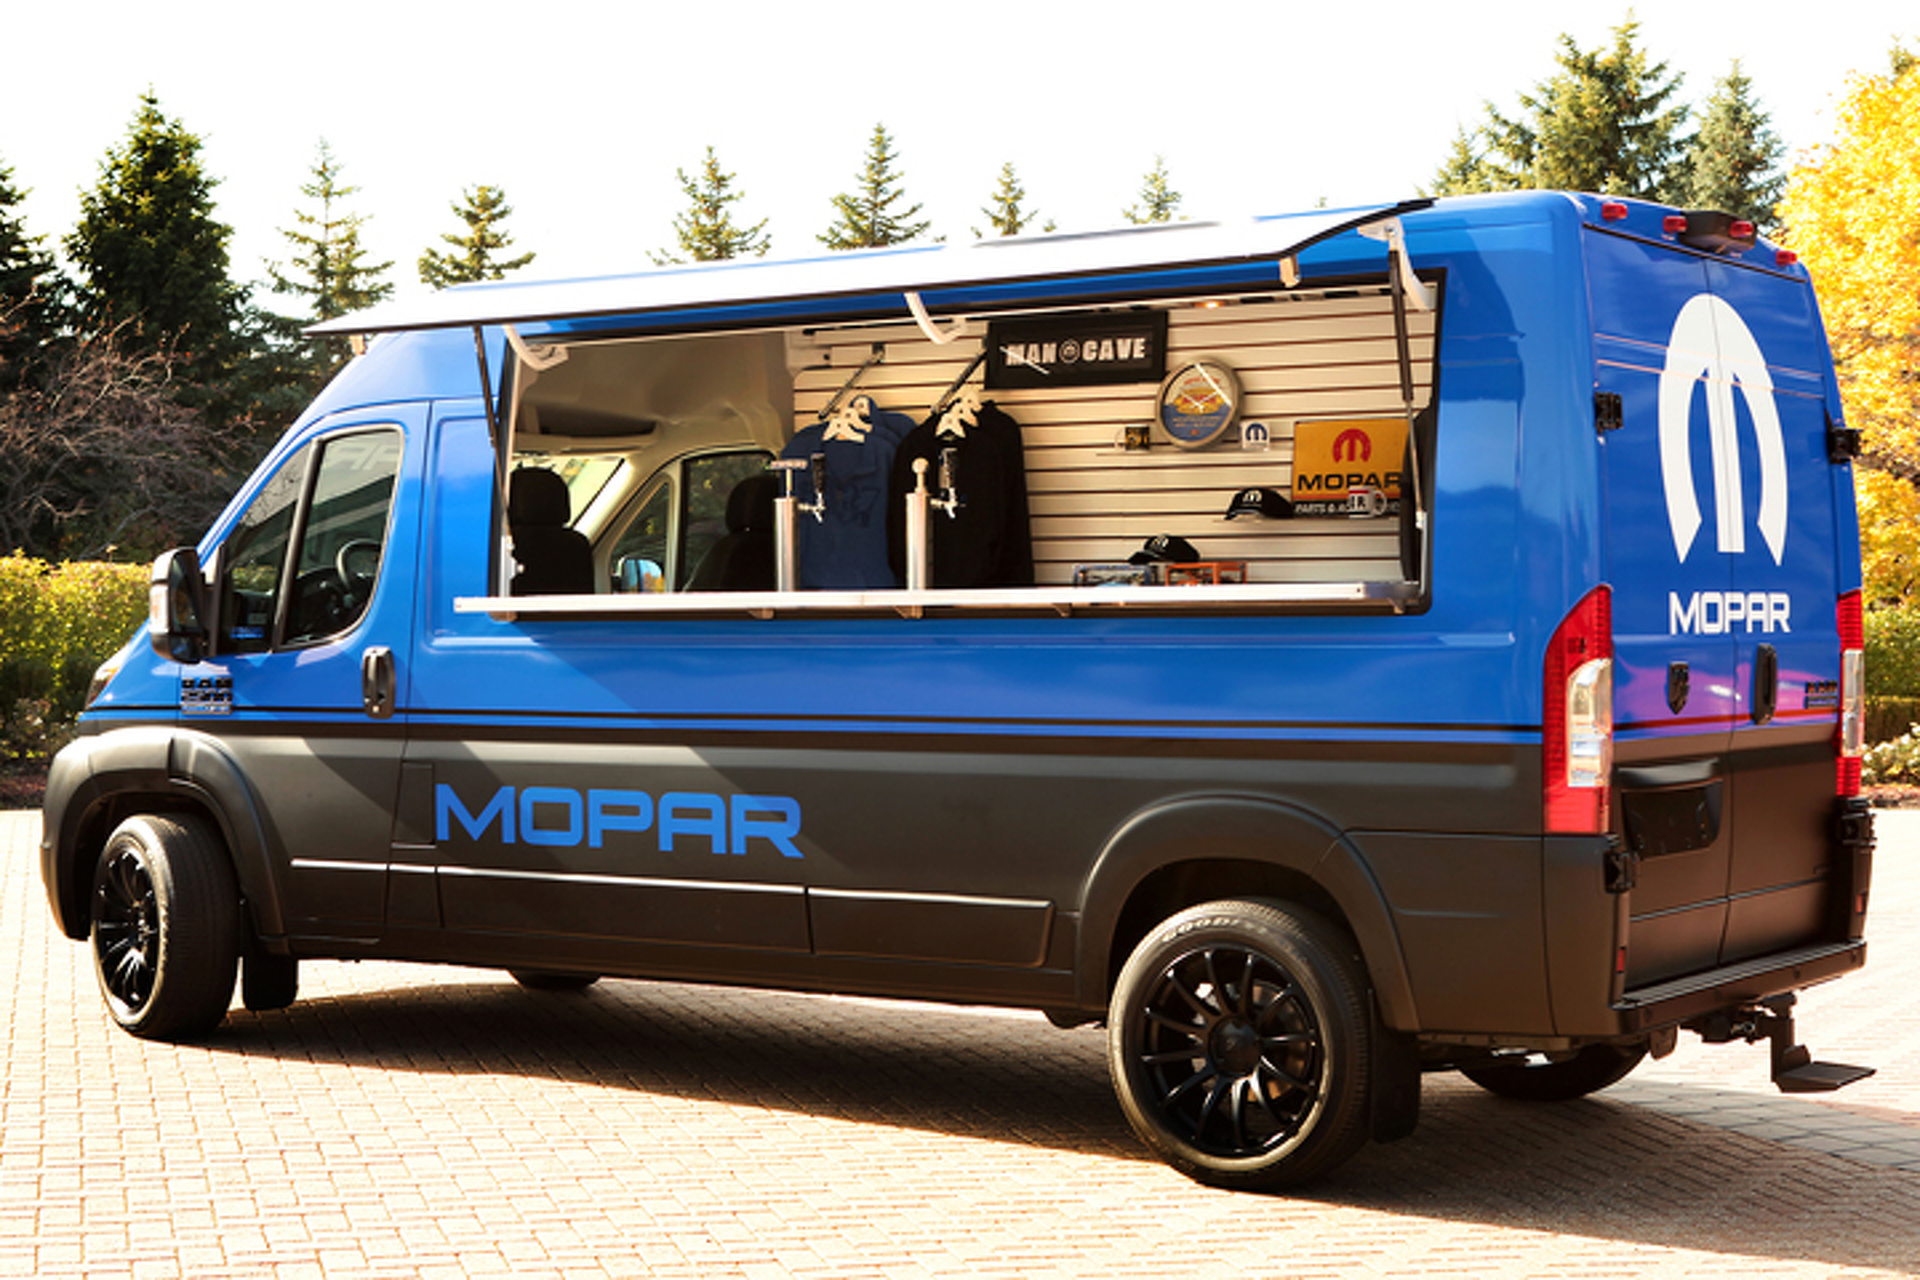 Mopar Delivers a Few Offbeat Offerings for SEMA